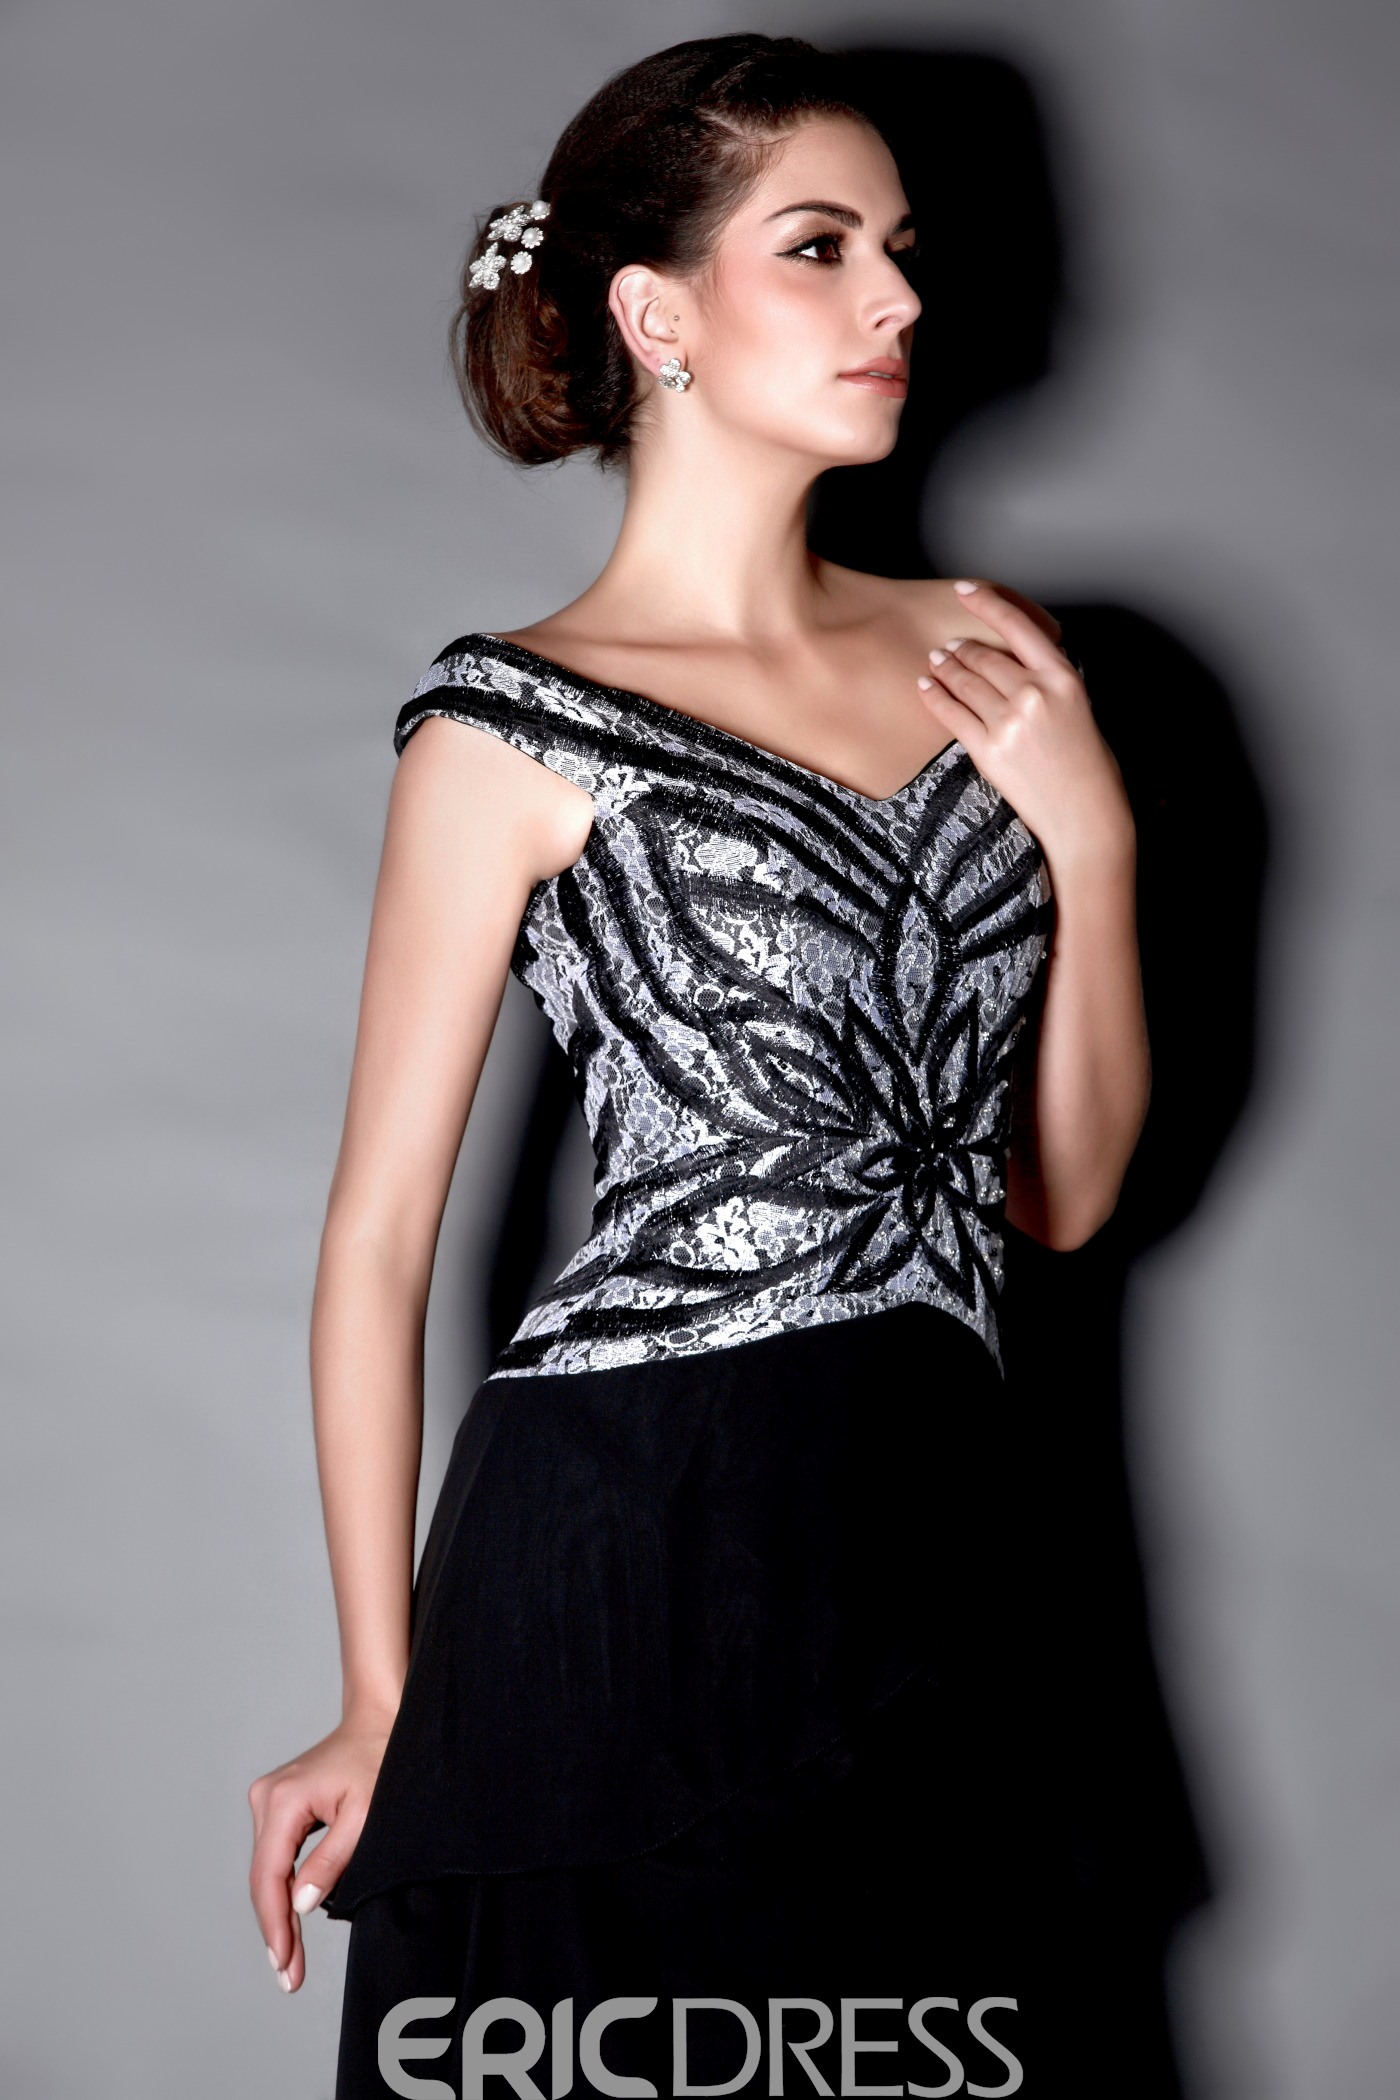 Marvelous Tiered A-Line Off-the-Shoulder Floor-Length Mother of the Bride Dress